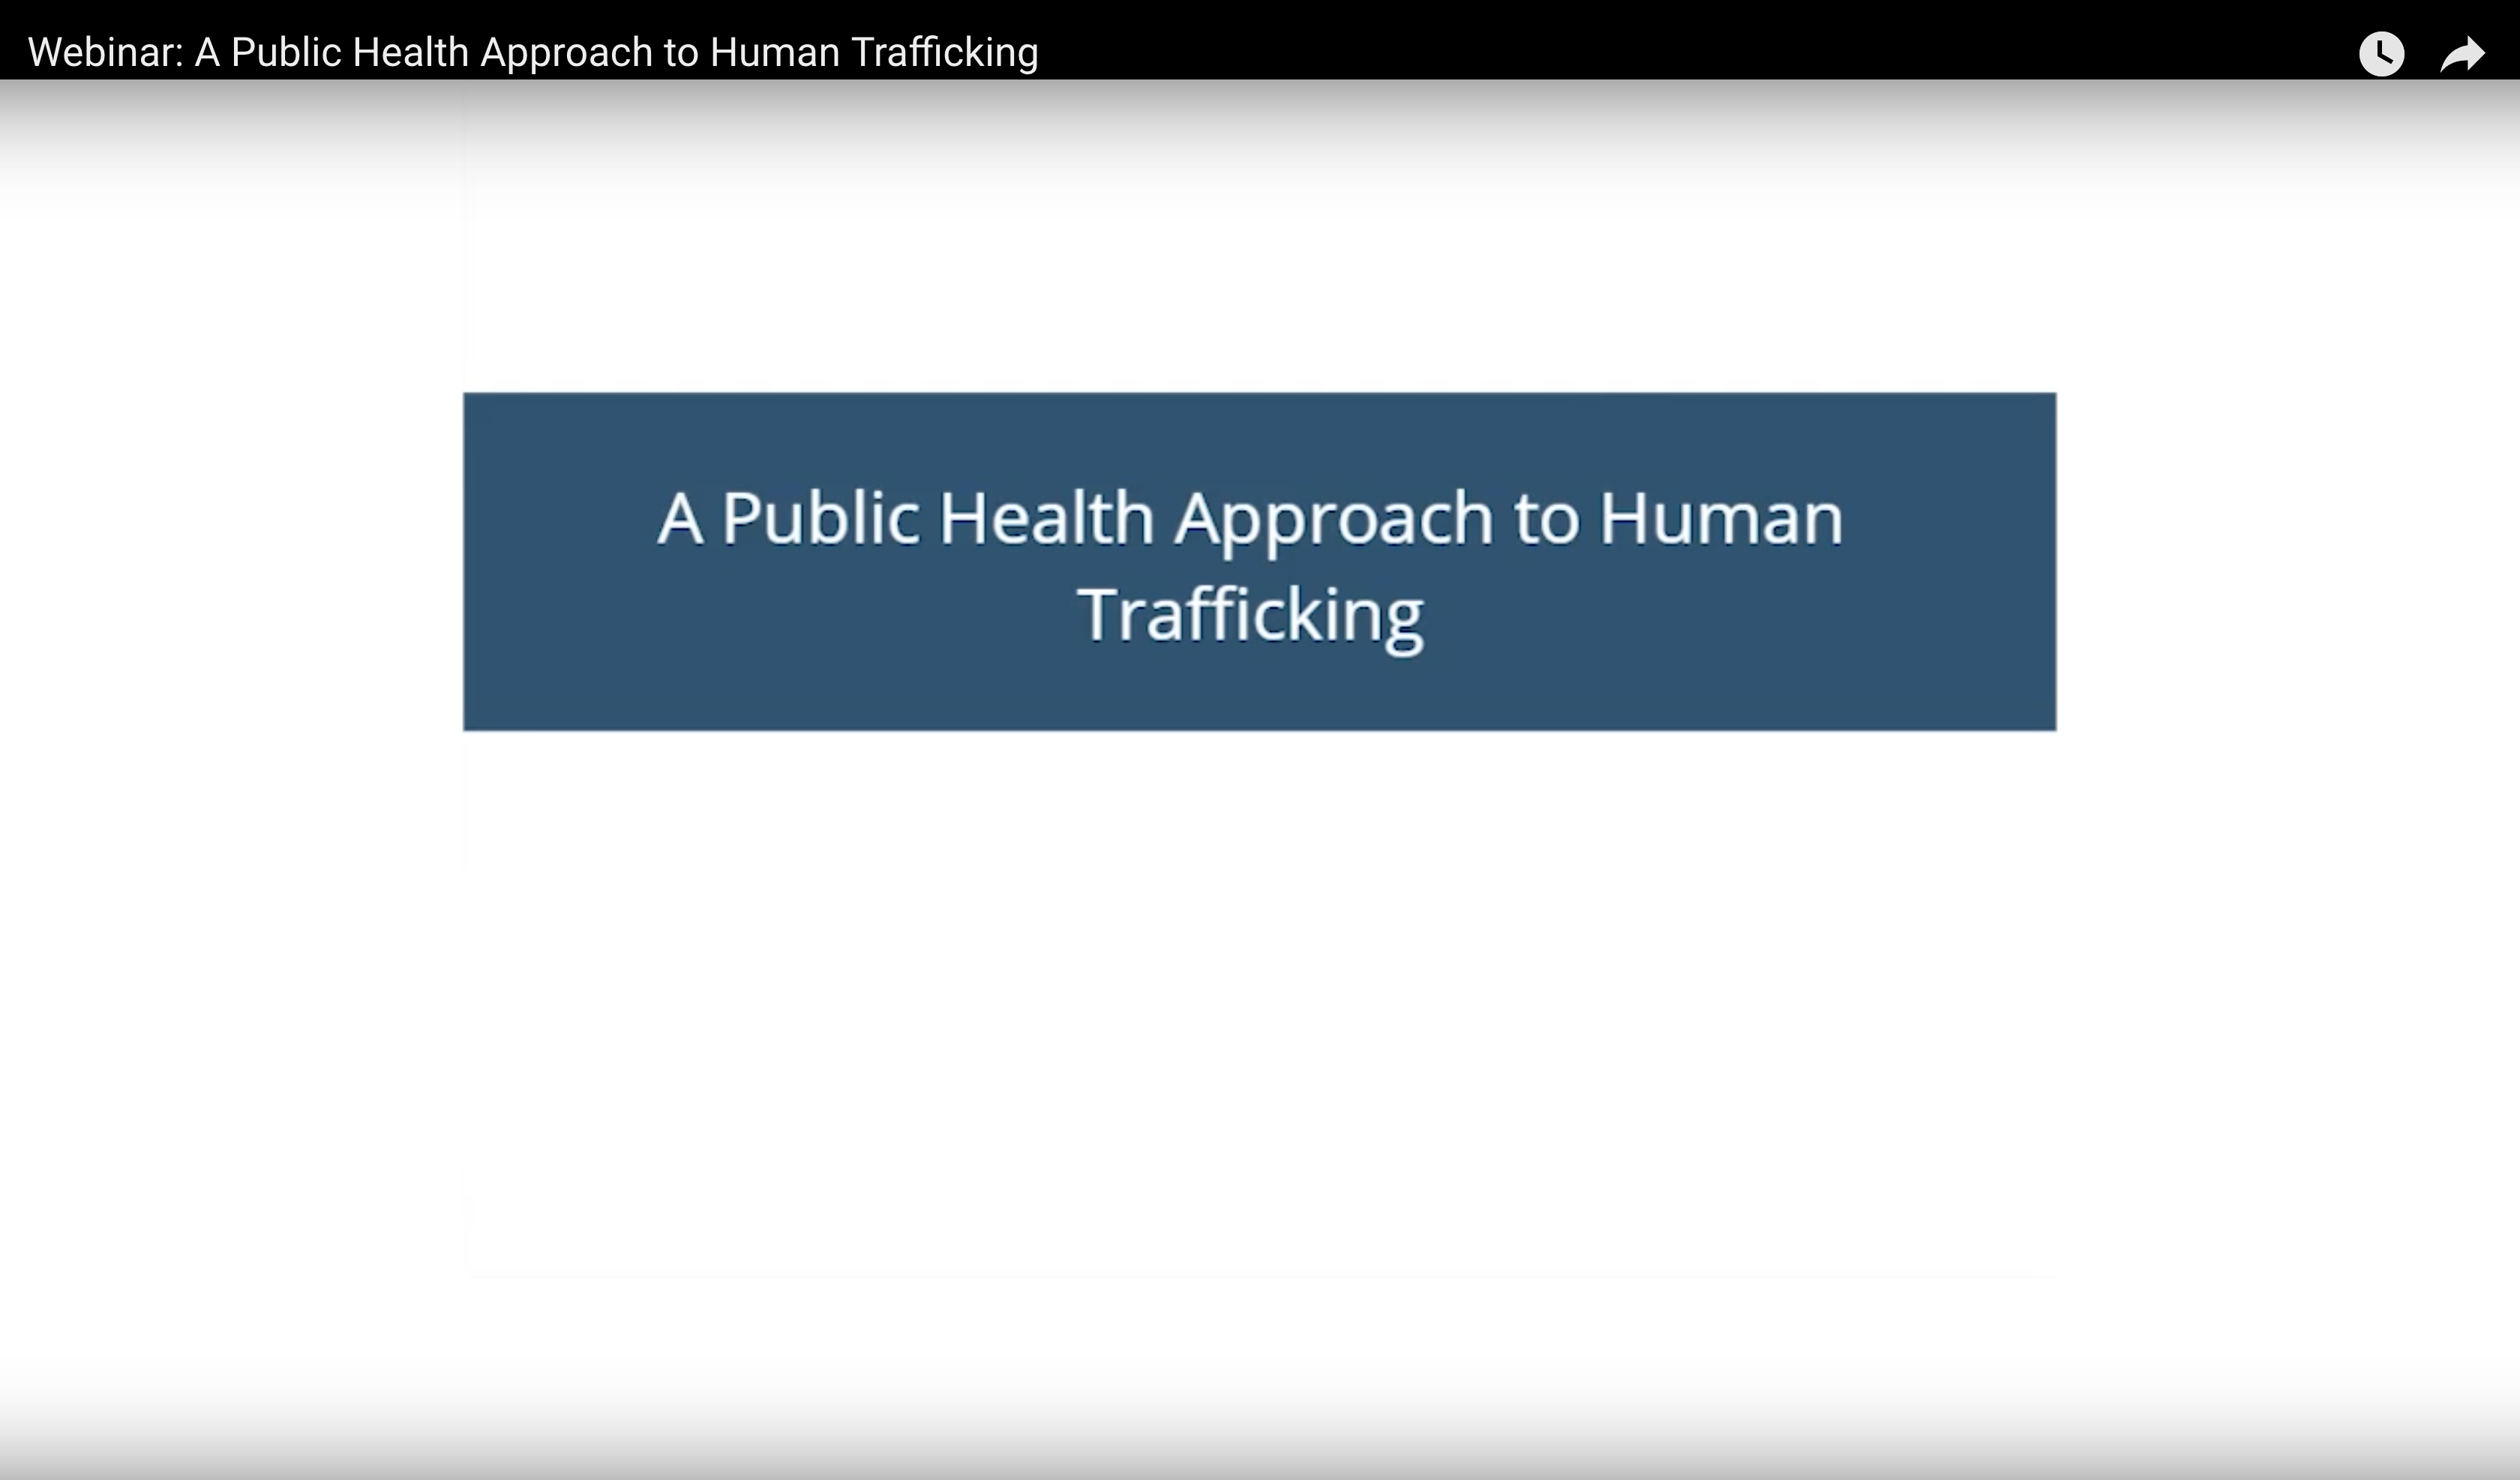 Public Health Approach Youtube Video